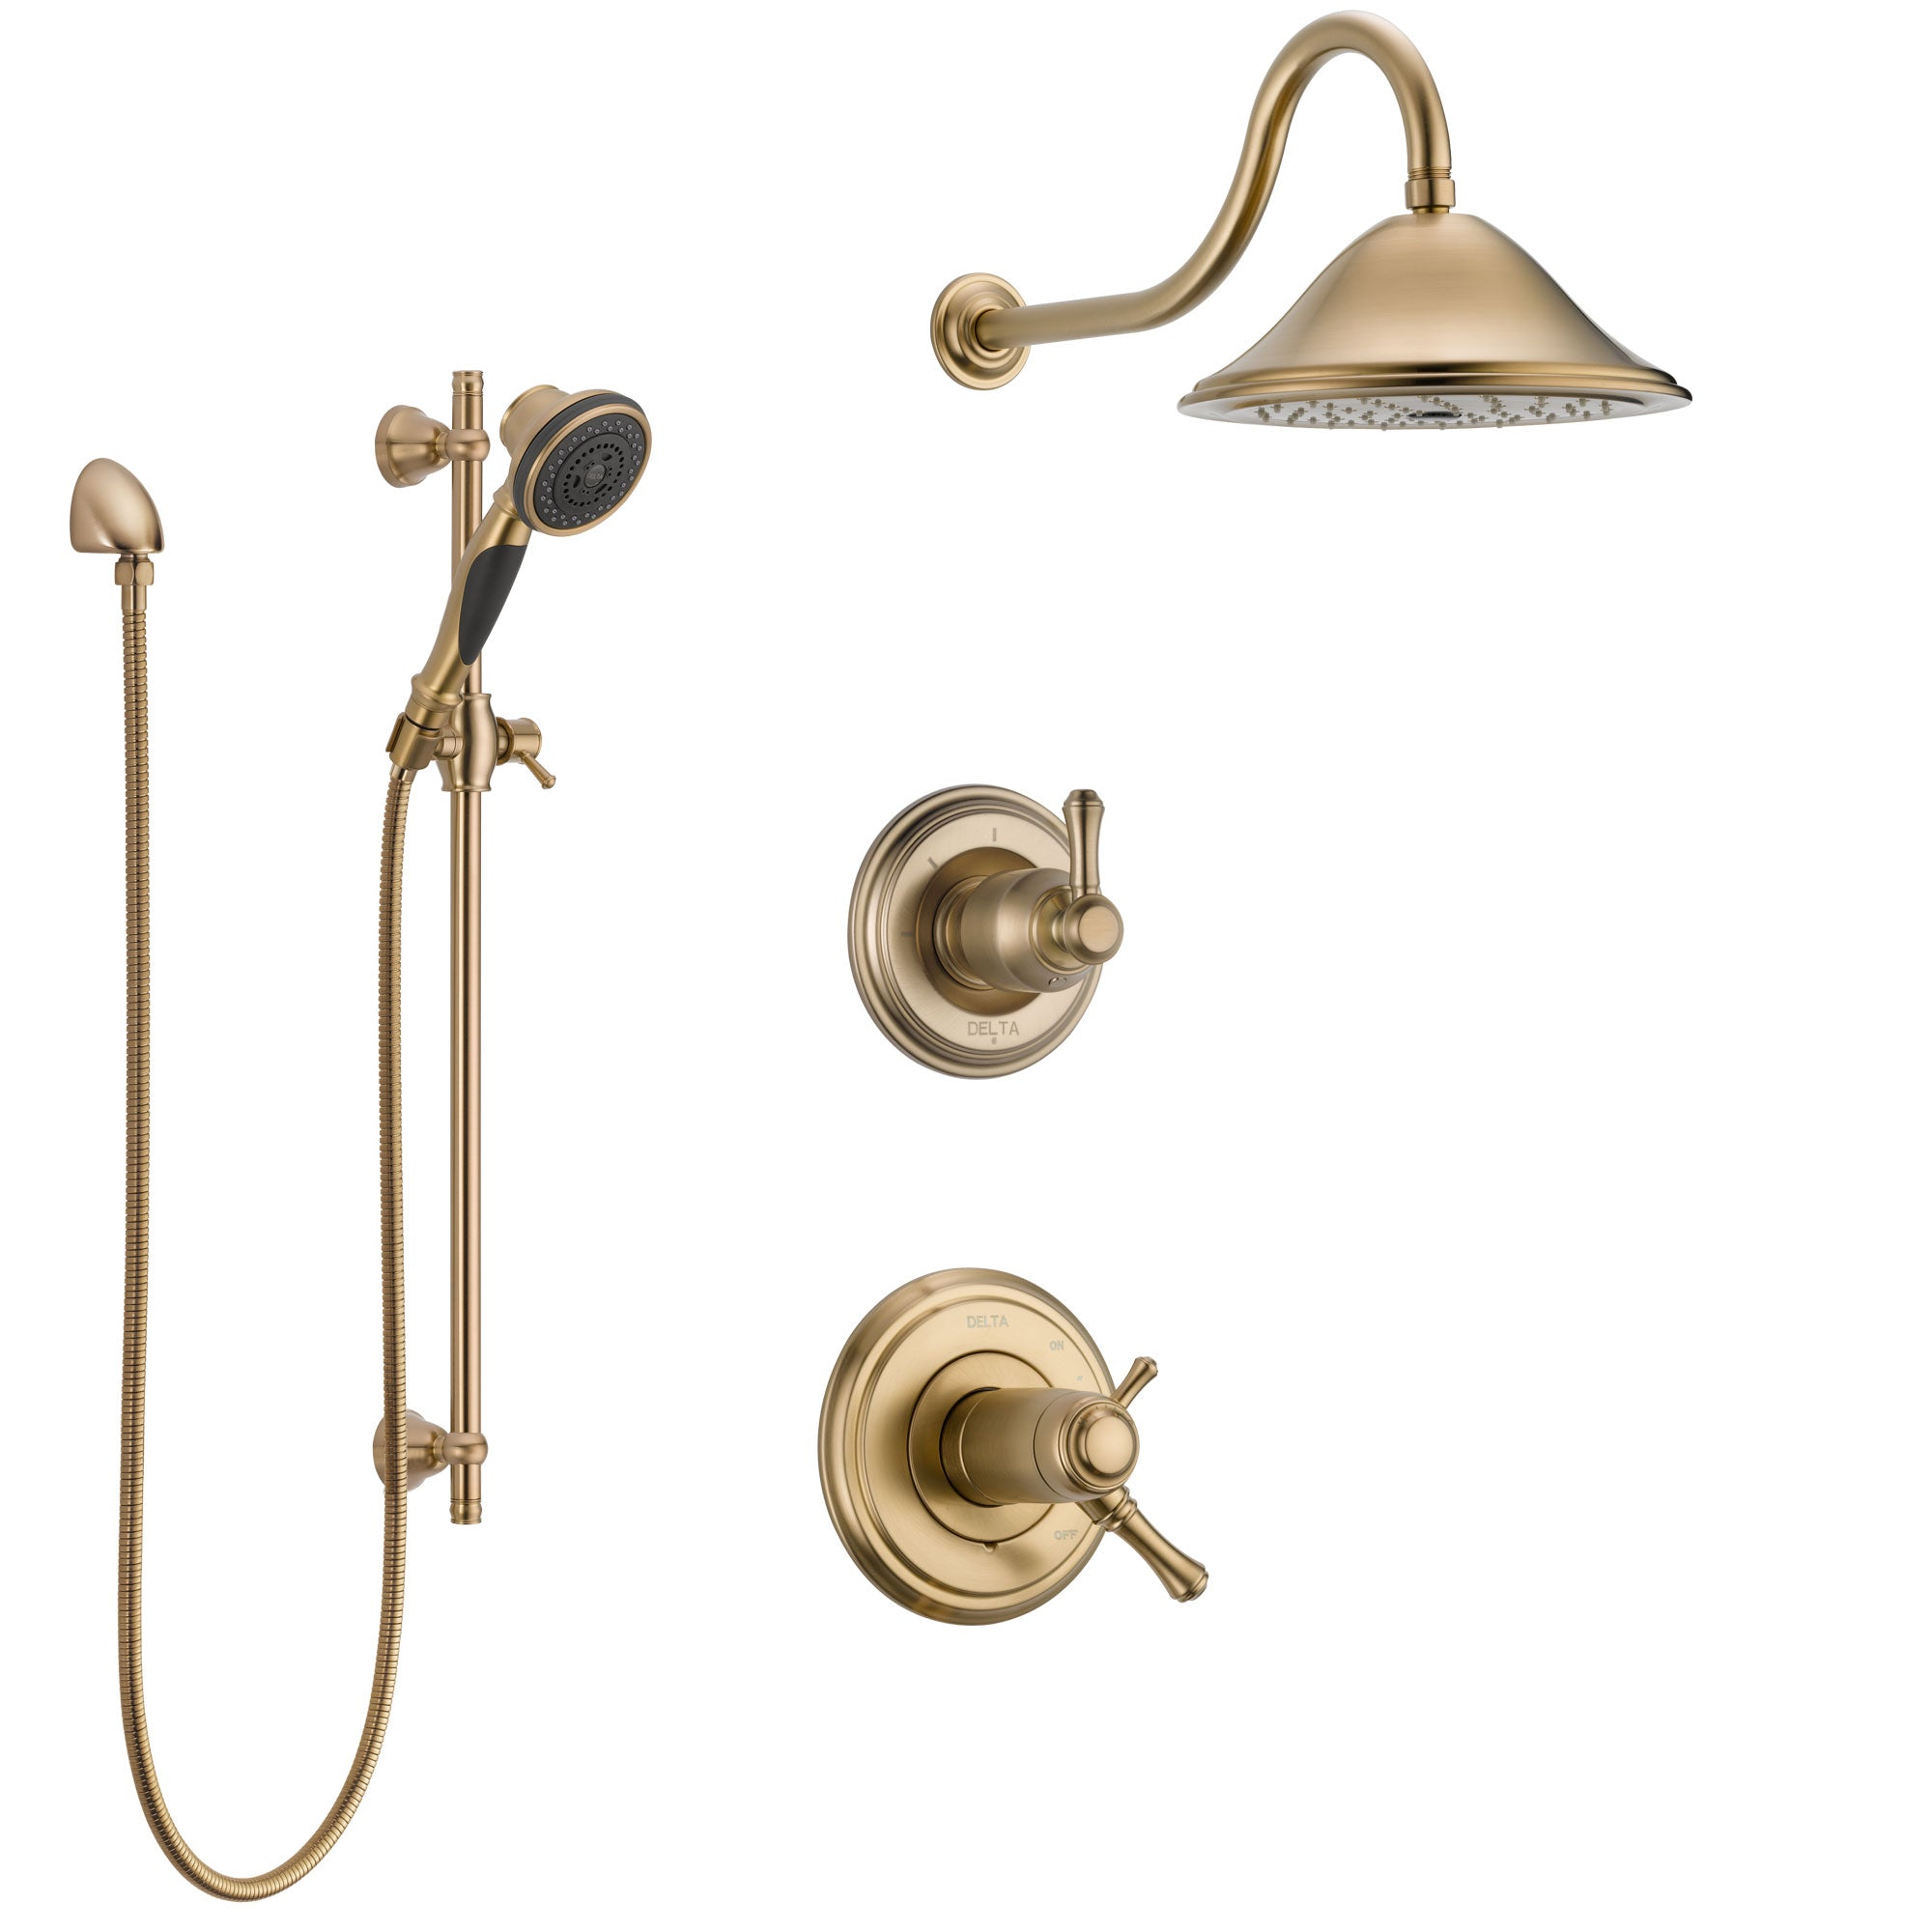 Delta Cassidy Champagne Bronze Shower System with Dual Thermostatic Control Handle, Diverter, Showerhead, and Hand Shower with Slidebar SS17T2971CZ3